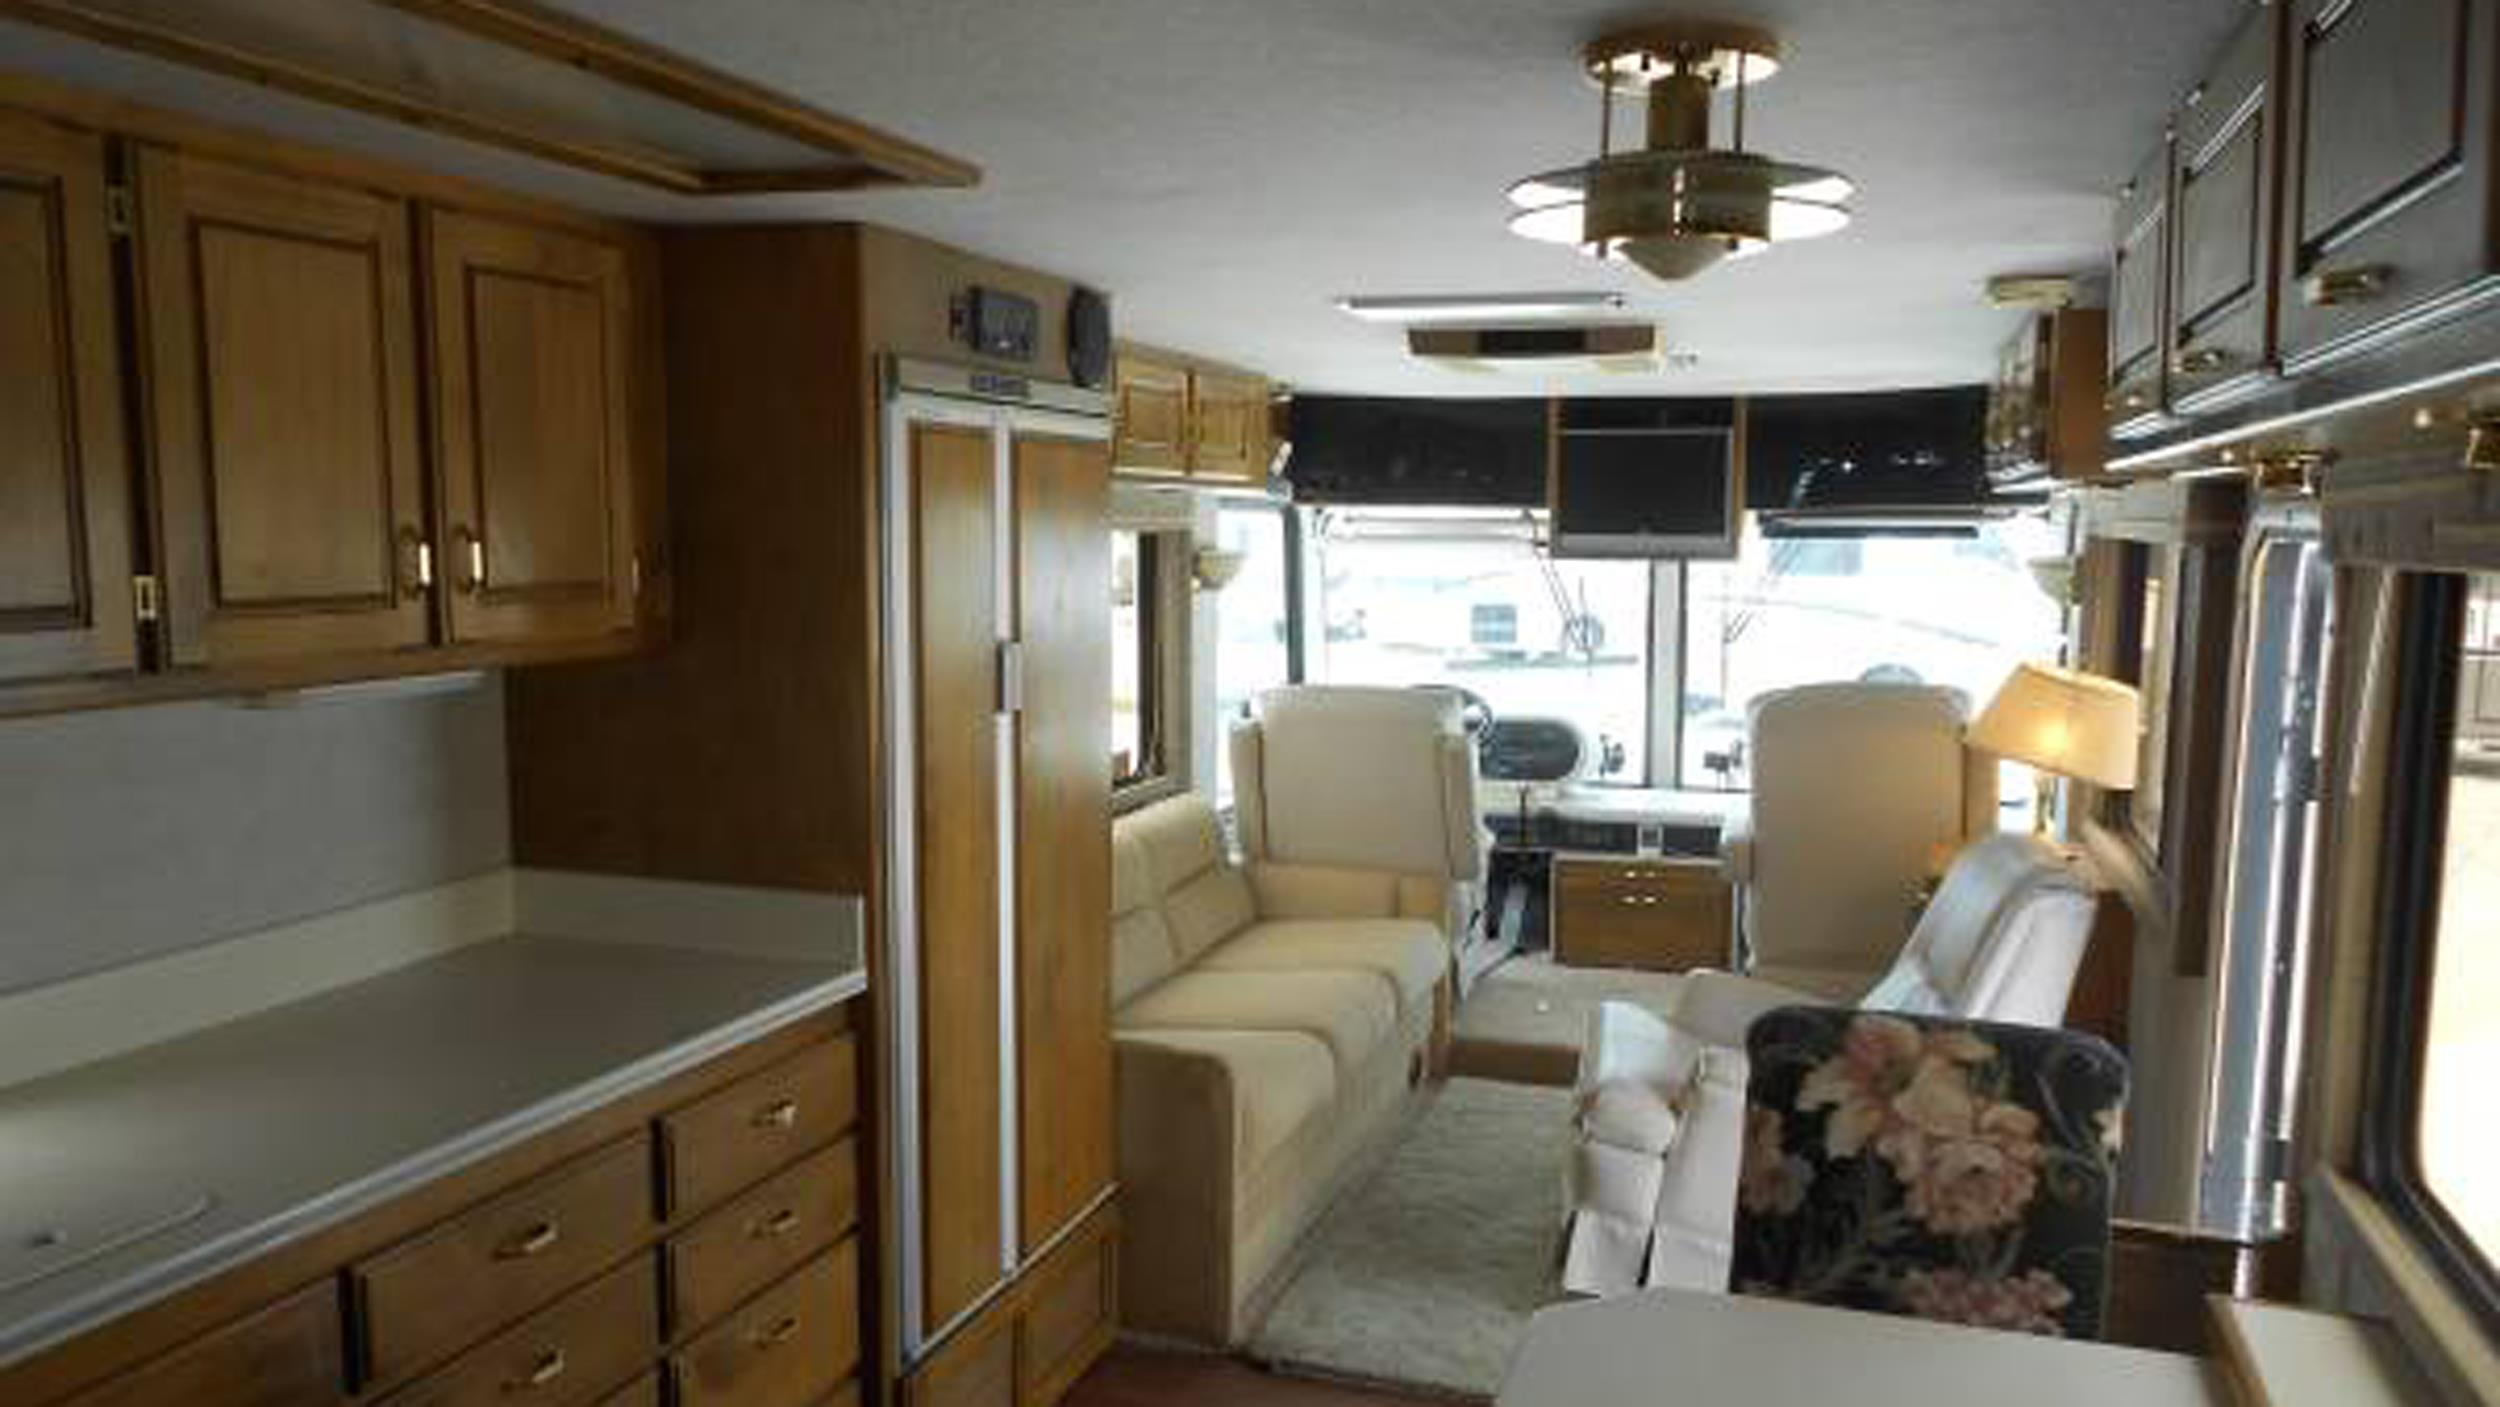 airstream rv camper of decorating more ideas in your and vintage trailer interior for best awesome remodel